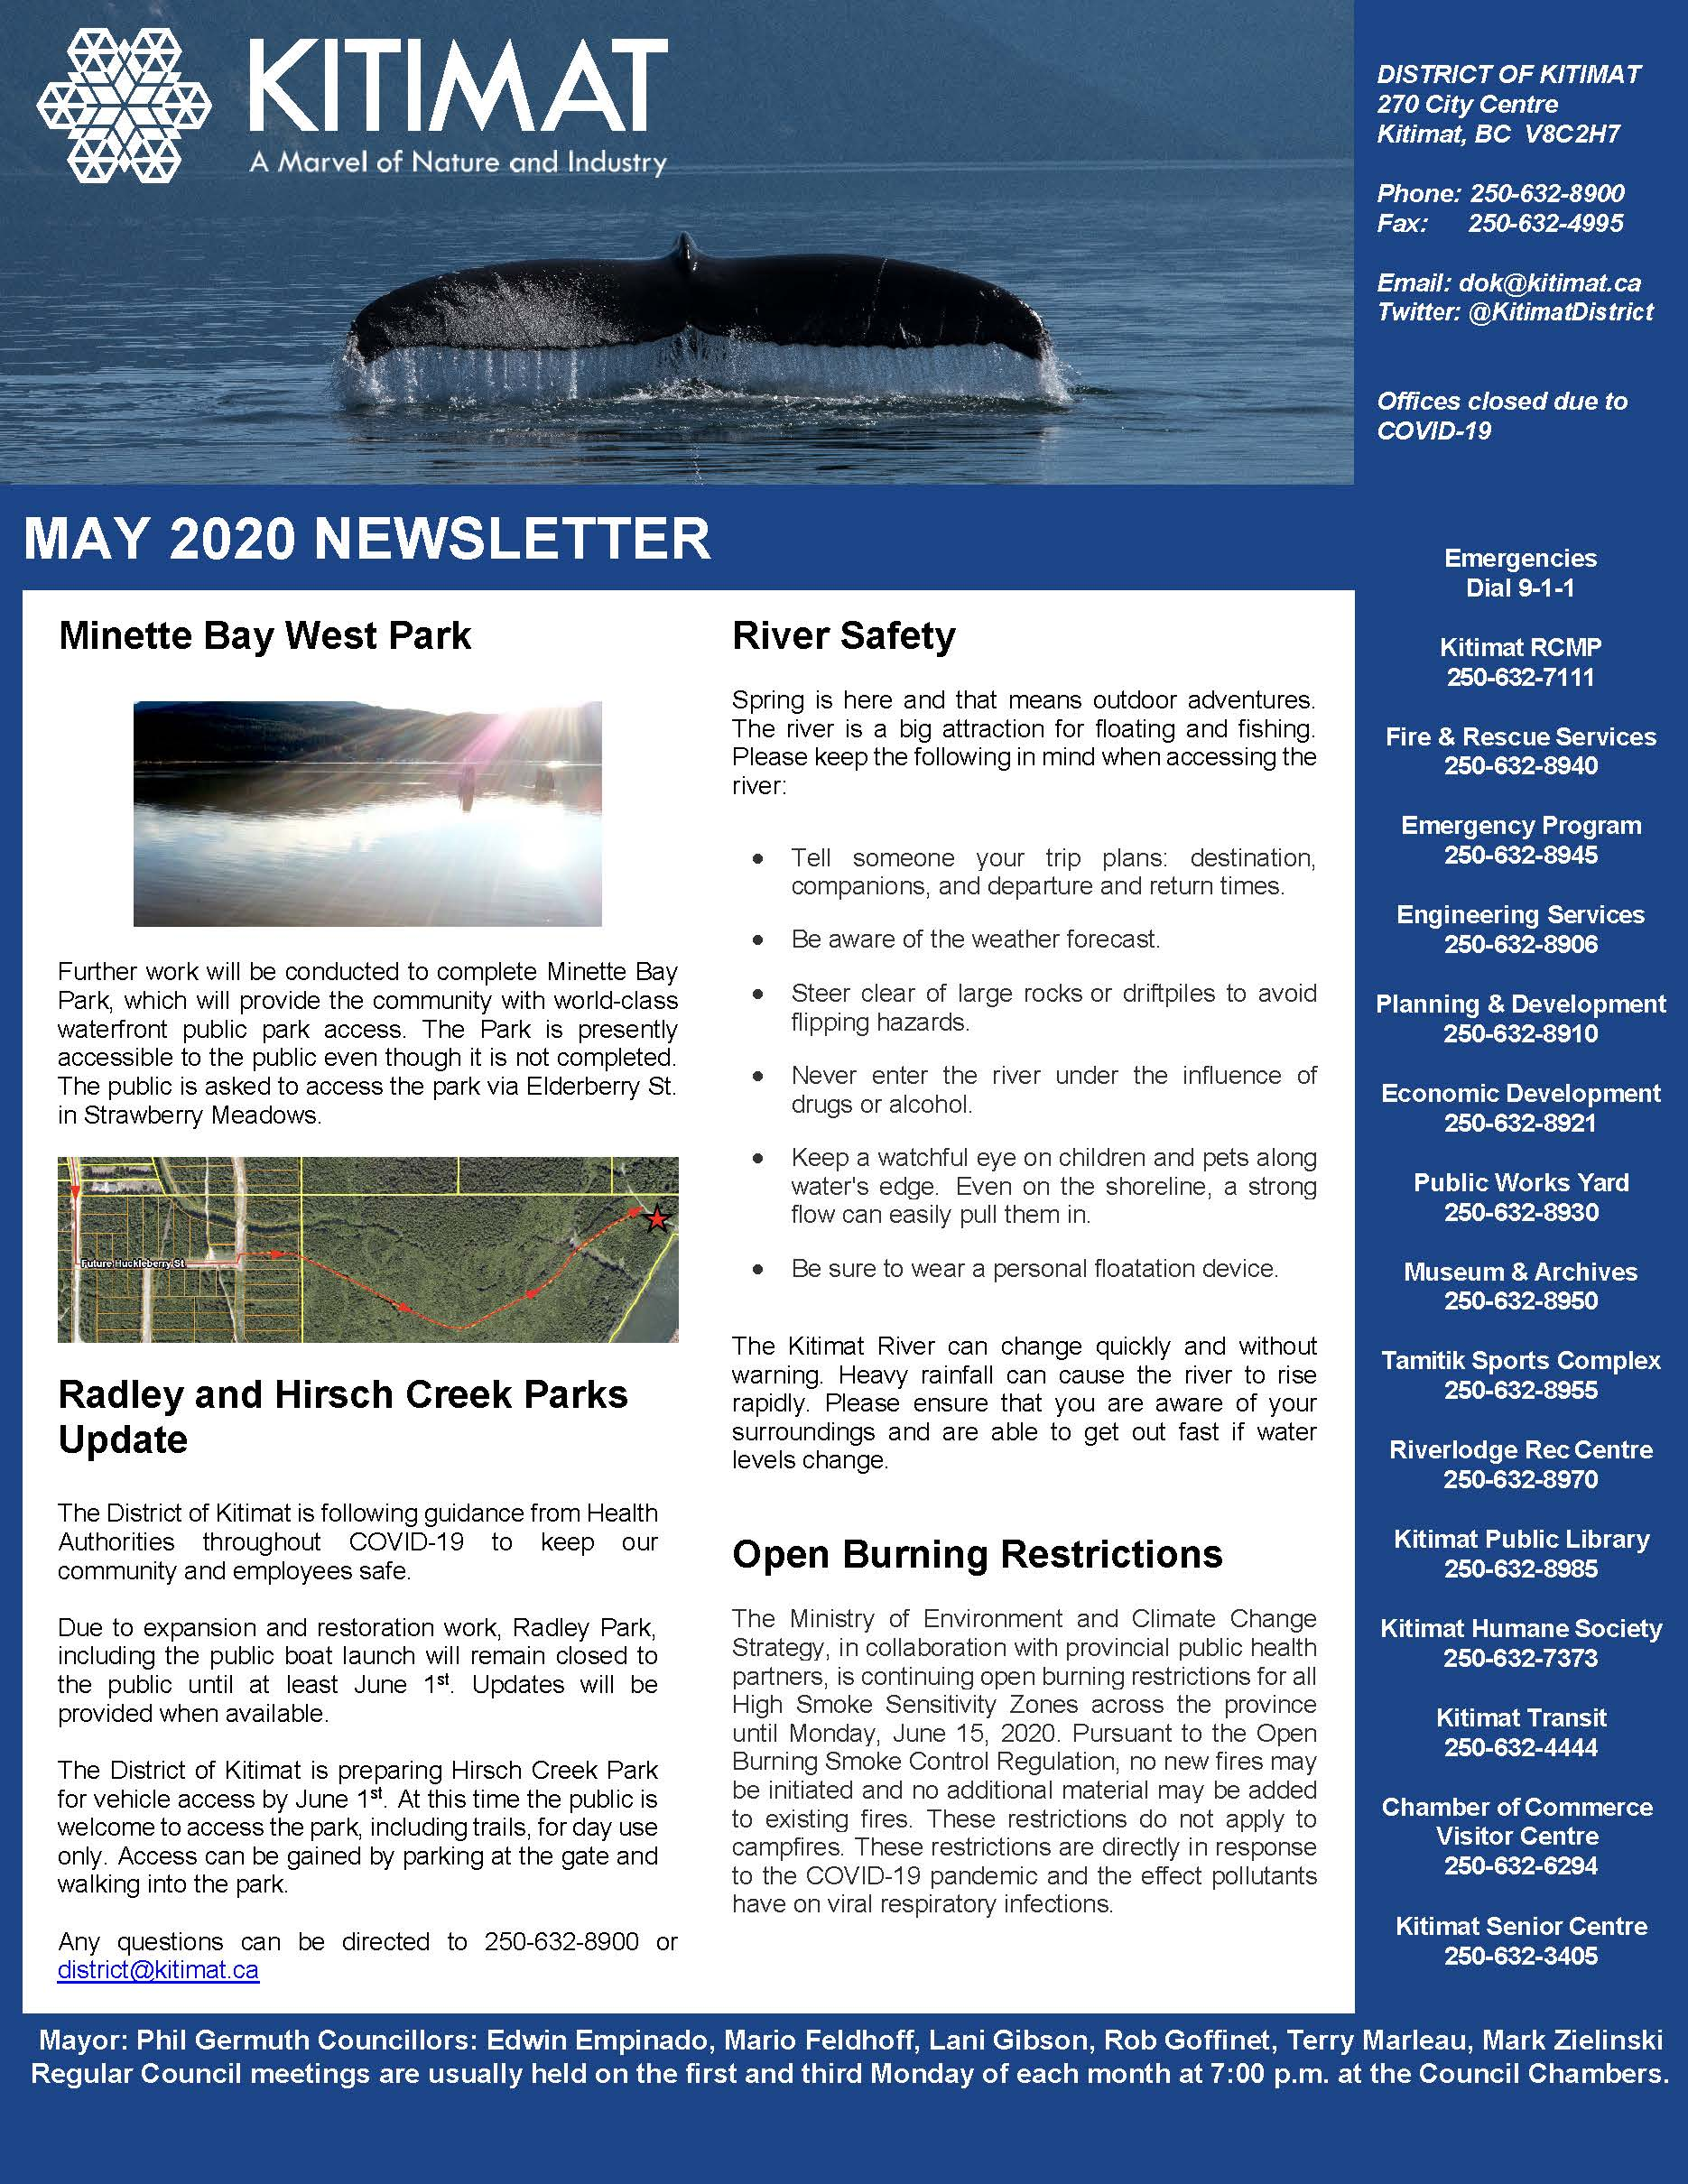 May 2020 DOK Newsletter, page 1 of 2